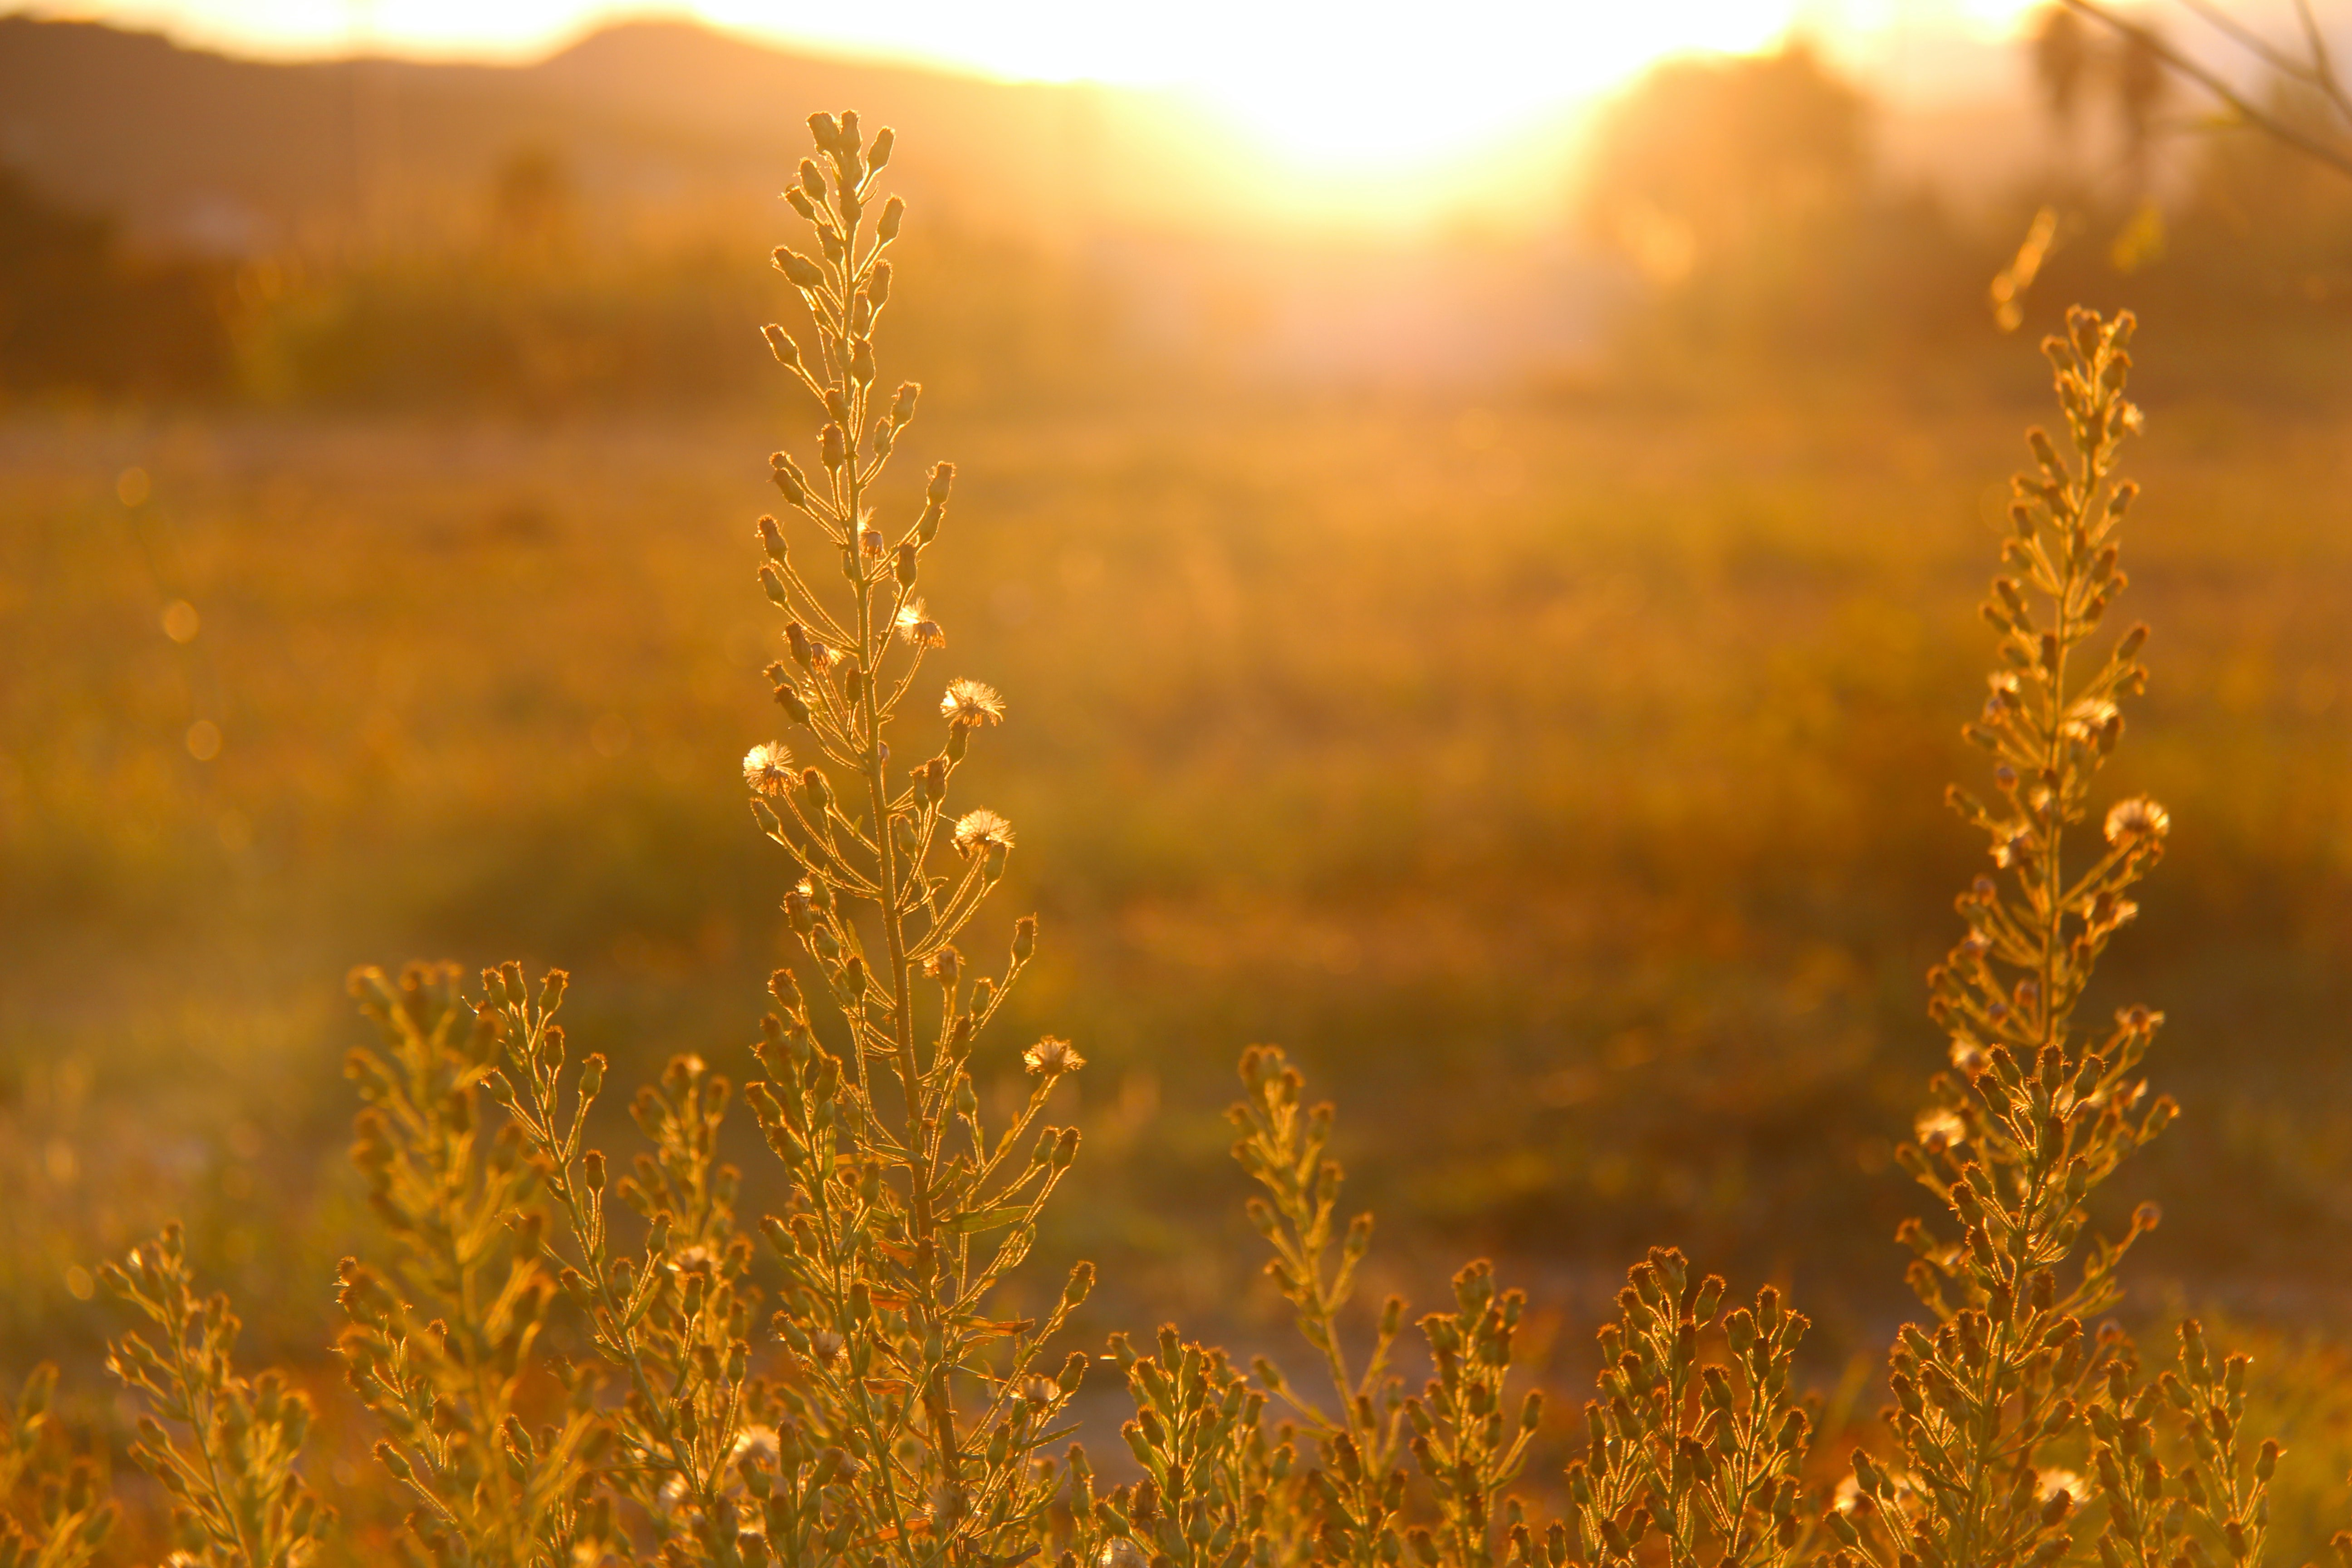 Glowing shot of the meadow turned golden in a summer day at sunrise